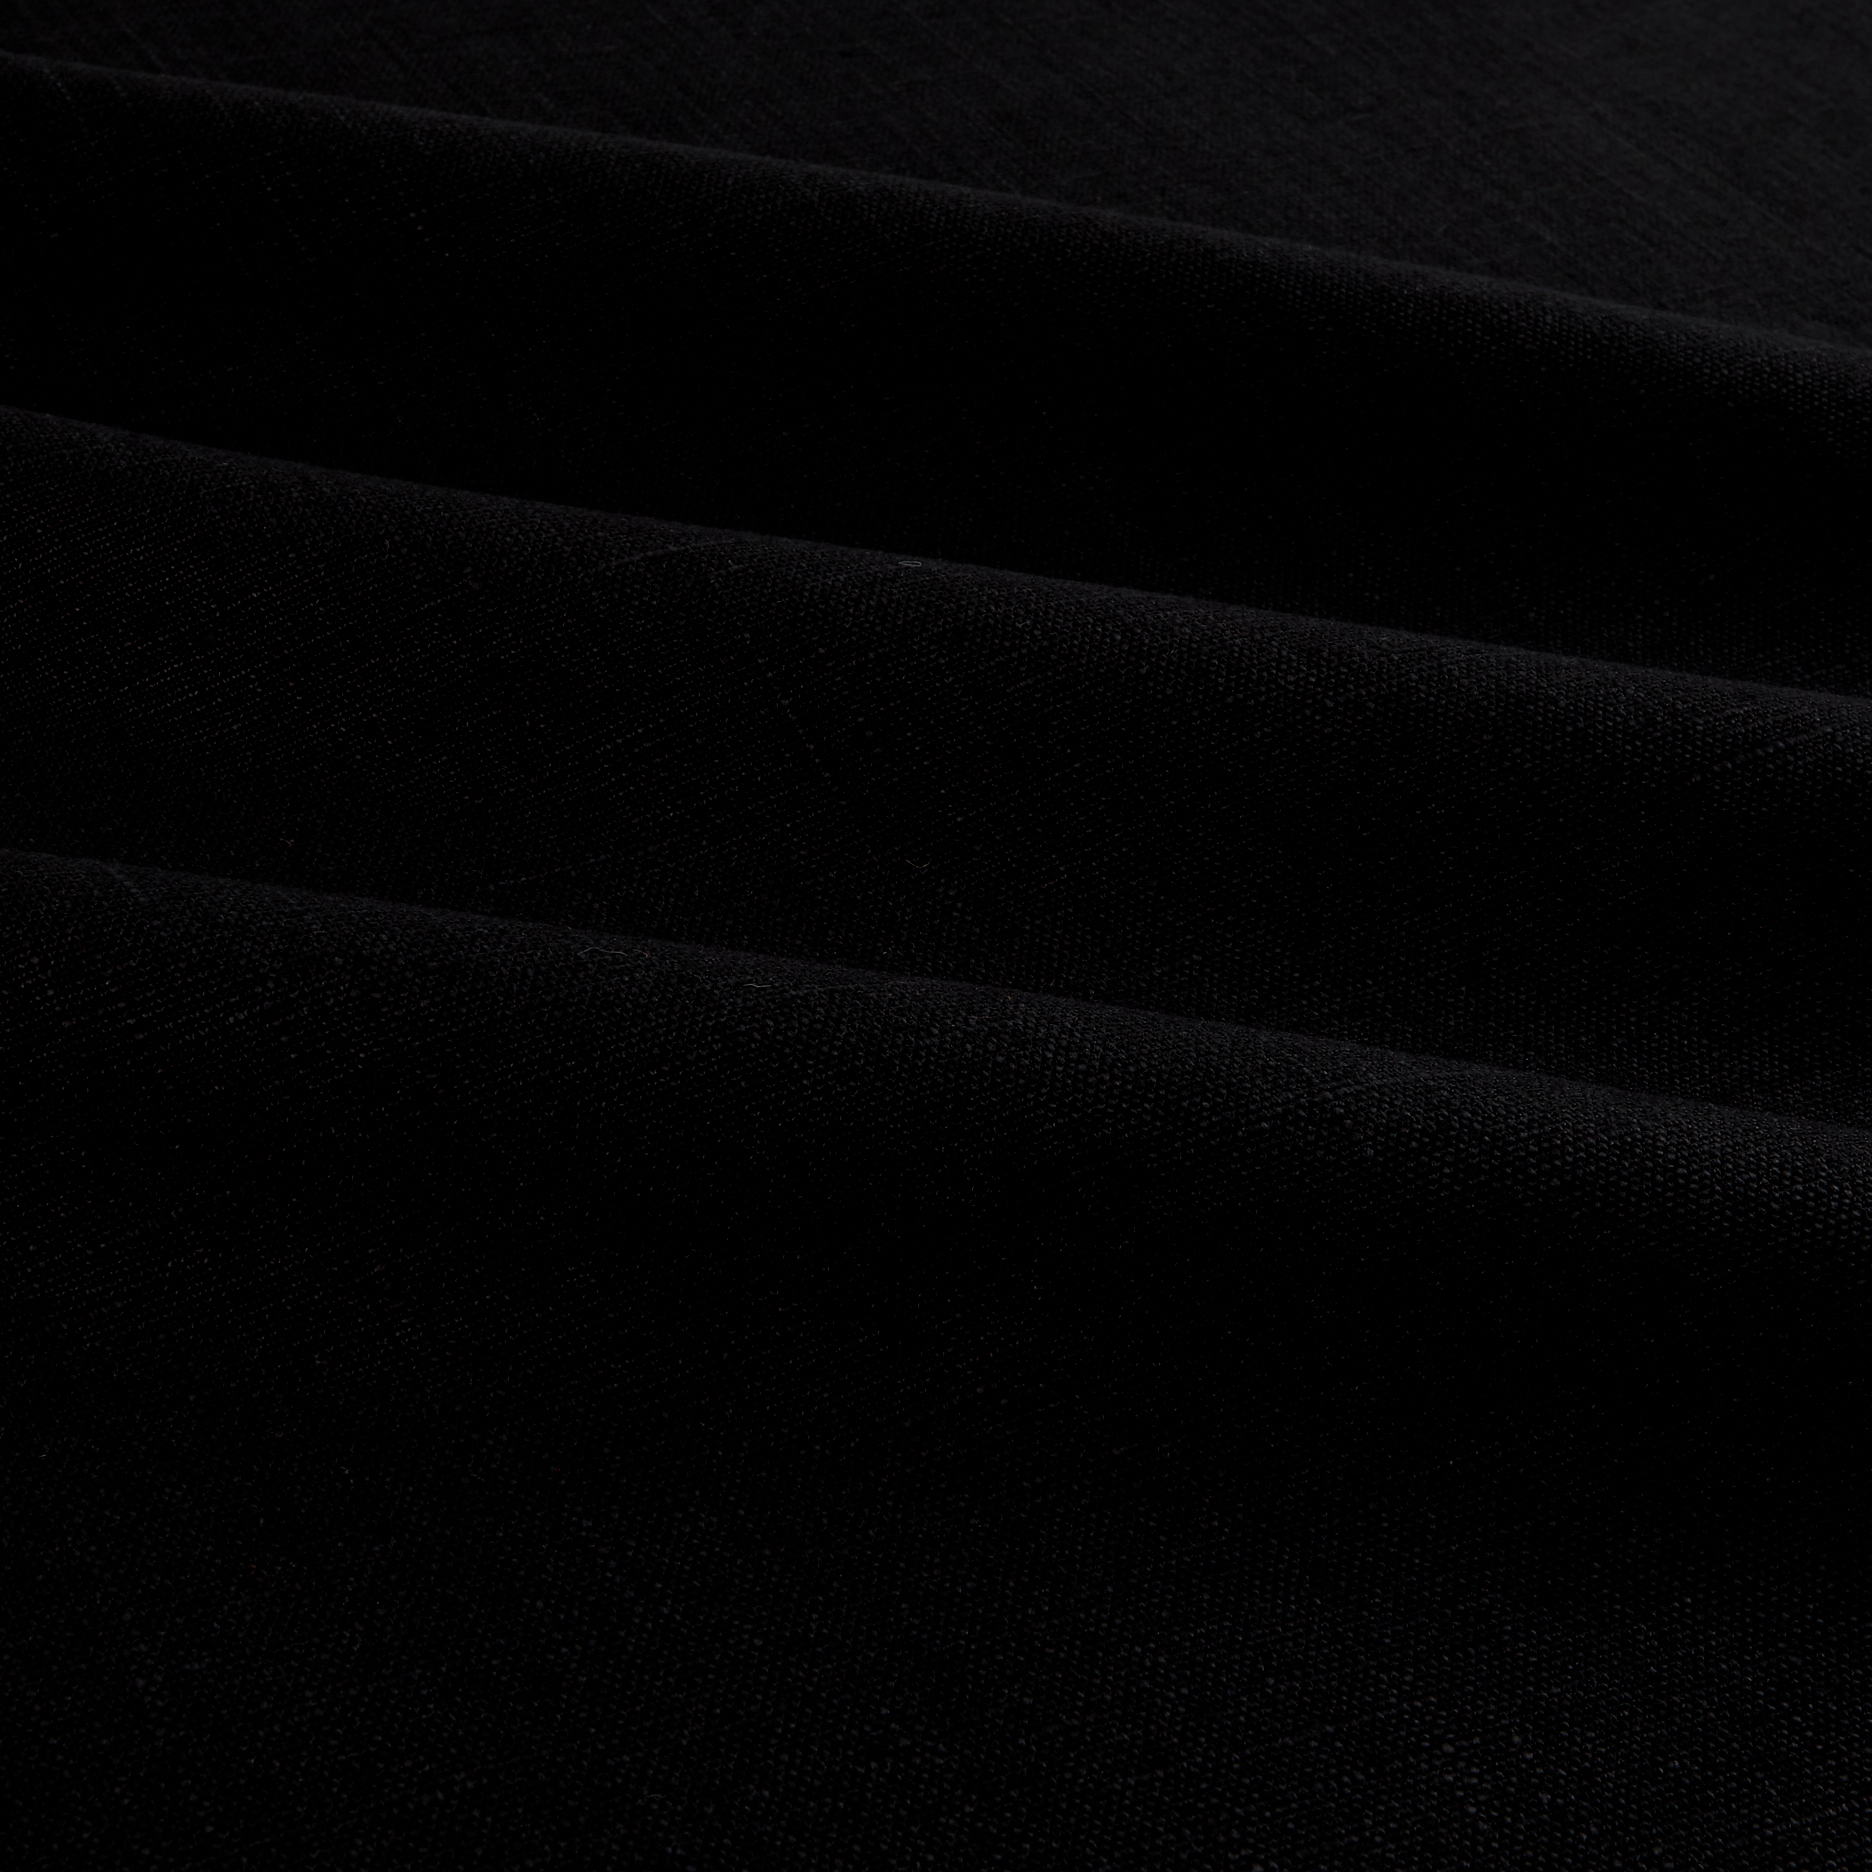 European 100% Washed Linen Black Fabric by Noveltex in USA